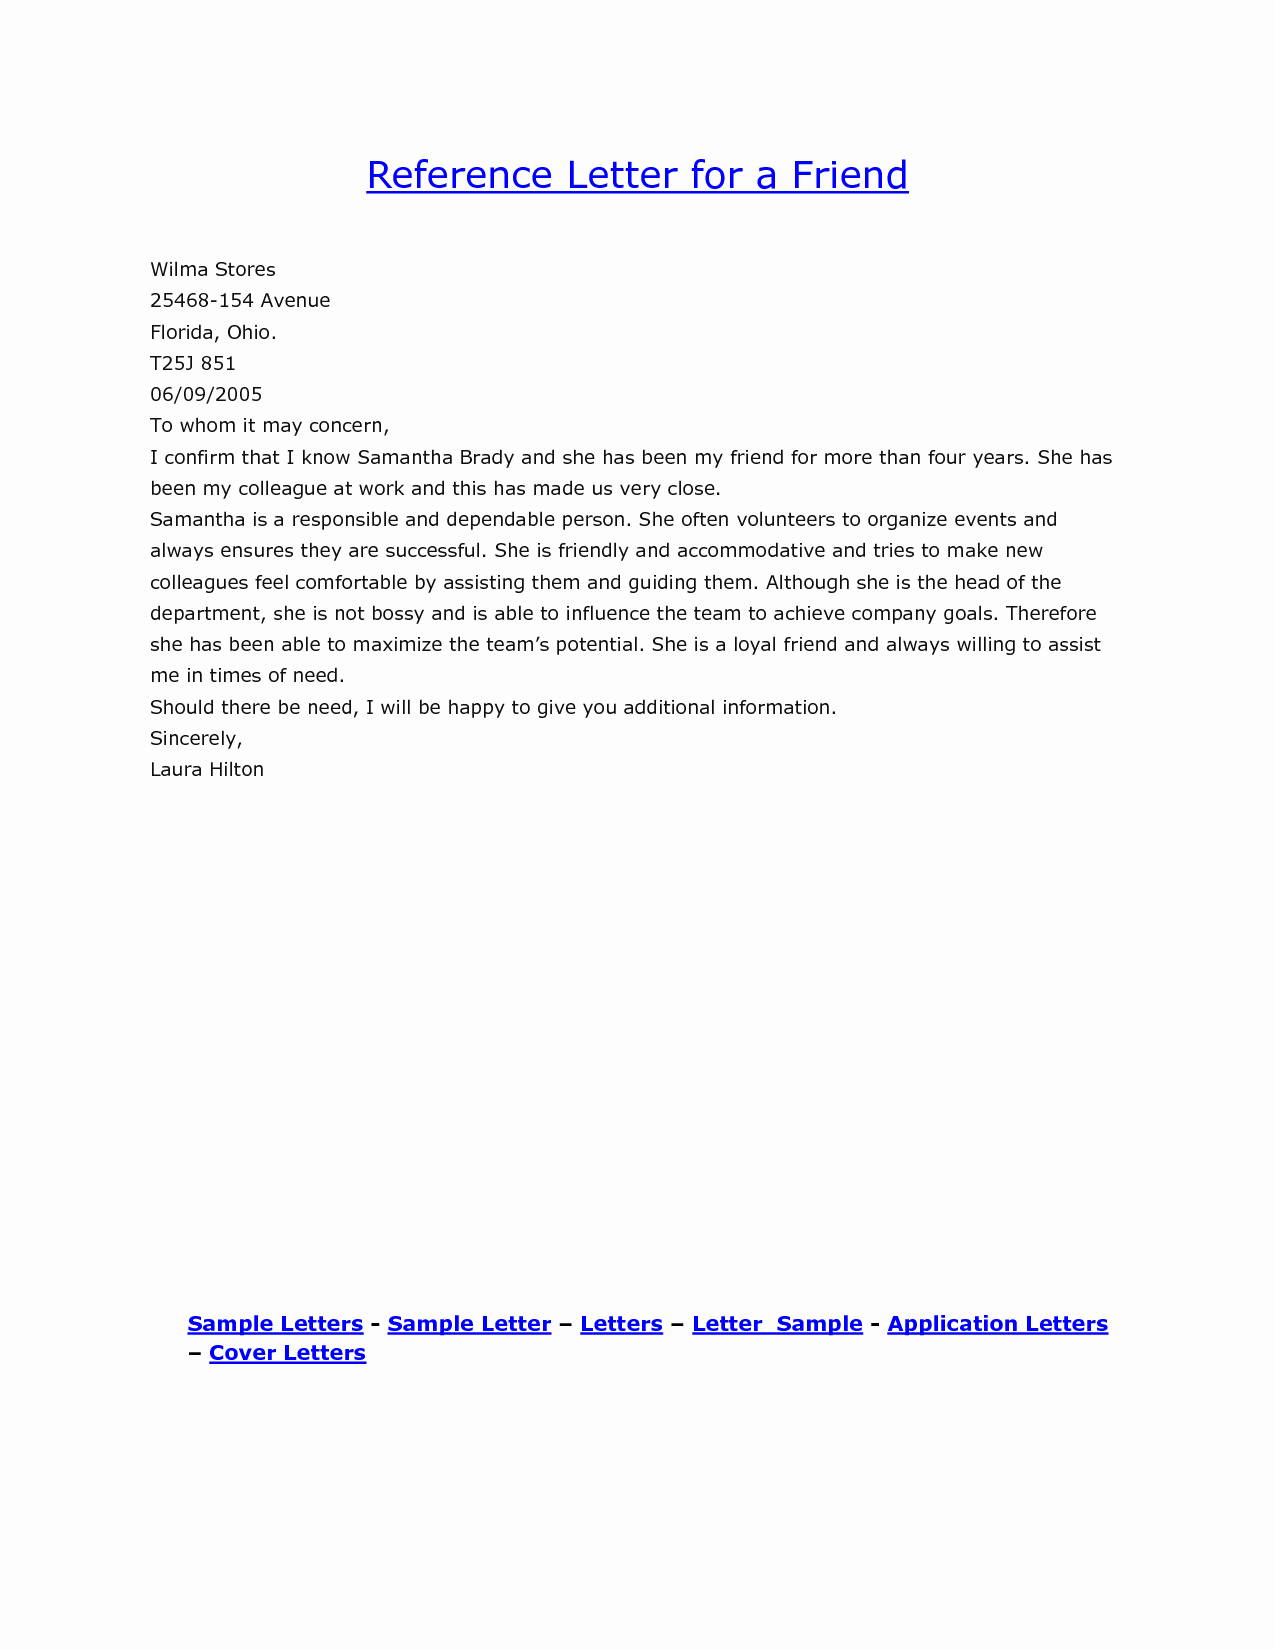 Reference Letter for Friend Fresh Personal Reference Letter for A Friend